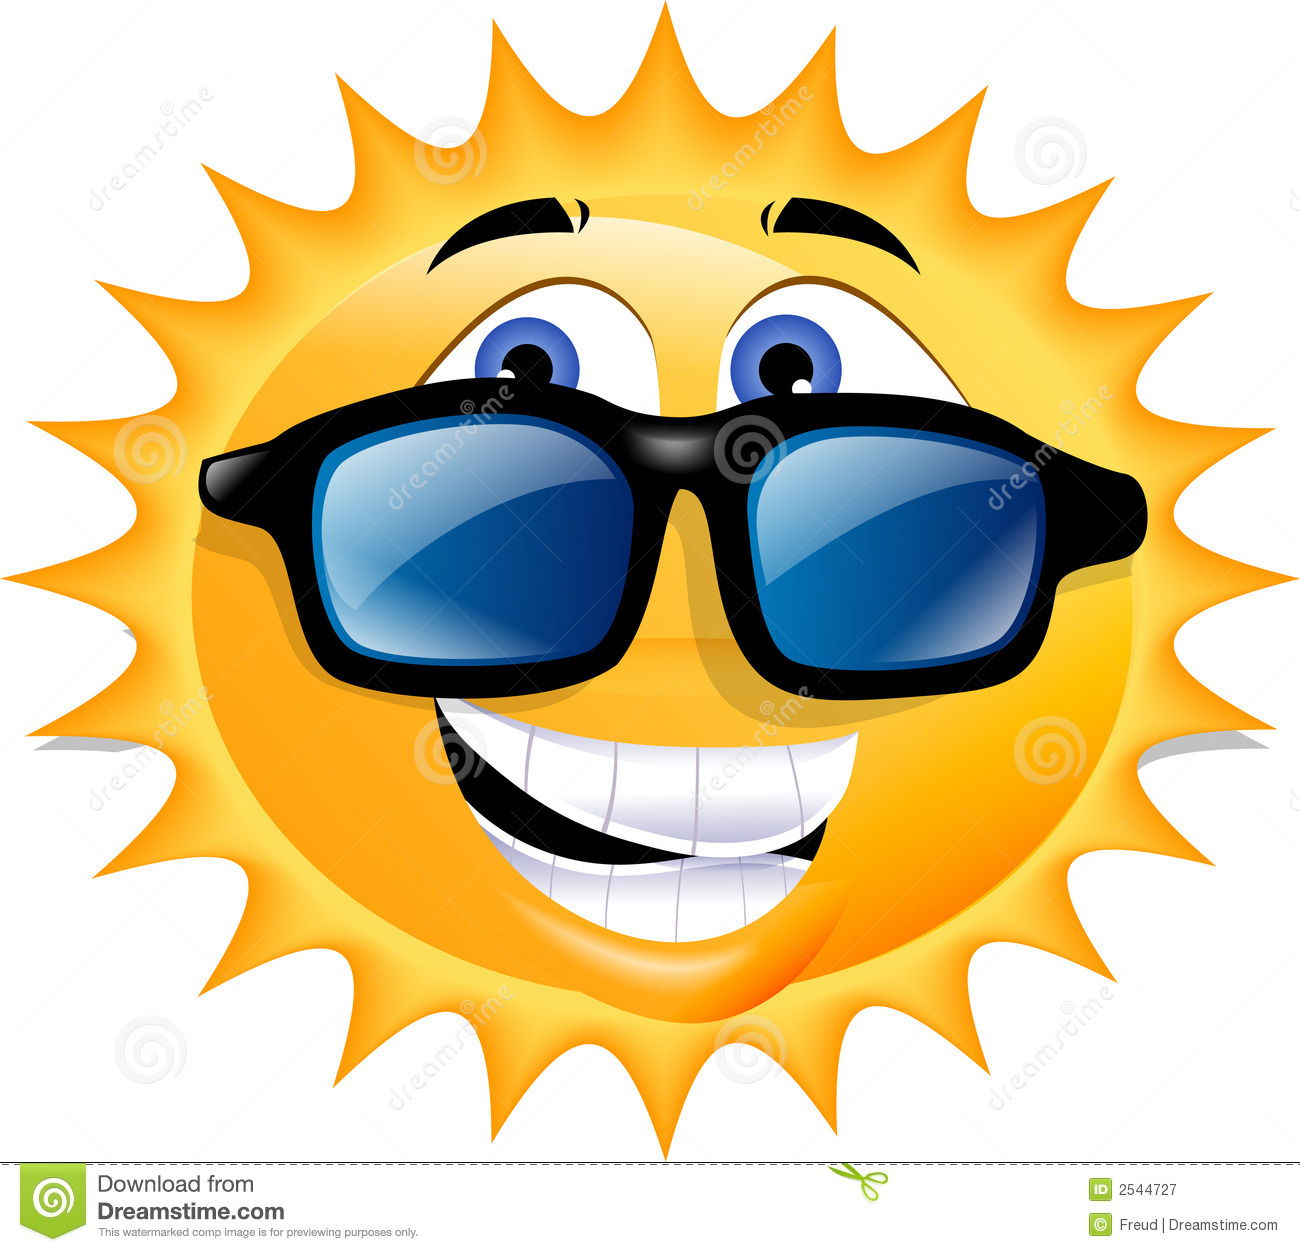 sun with sunglasses clip art clipart panda free clipart images rh clipartpanda com sun with sunglasses clip art free sun wearing sunglasses clipart